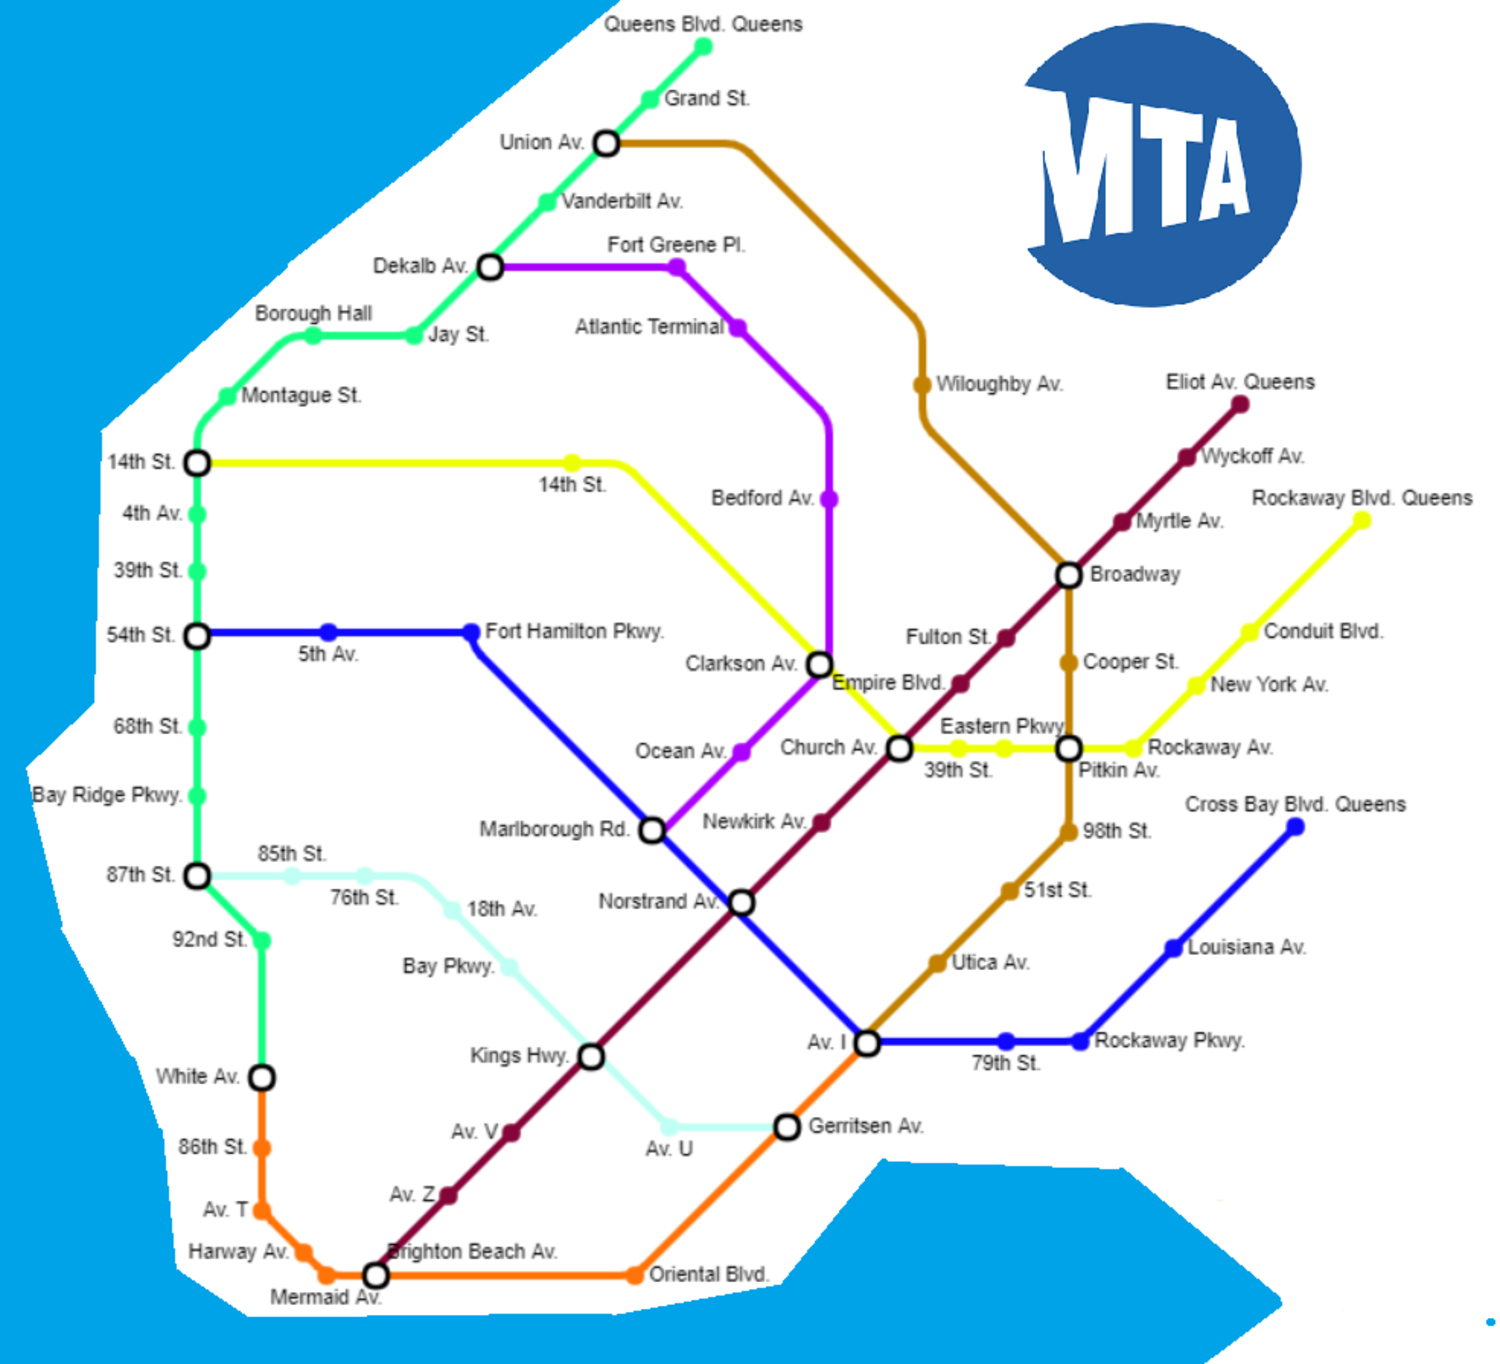 Subway Map of Brooklyn if every Subway Restaurant was a station